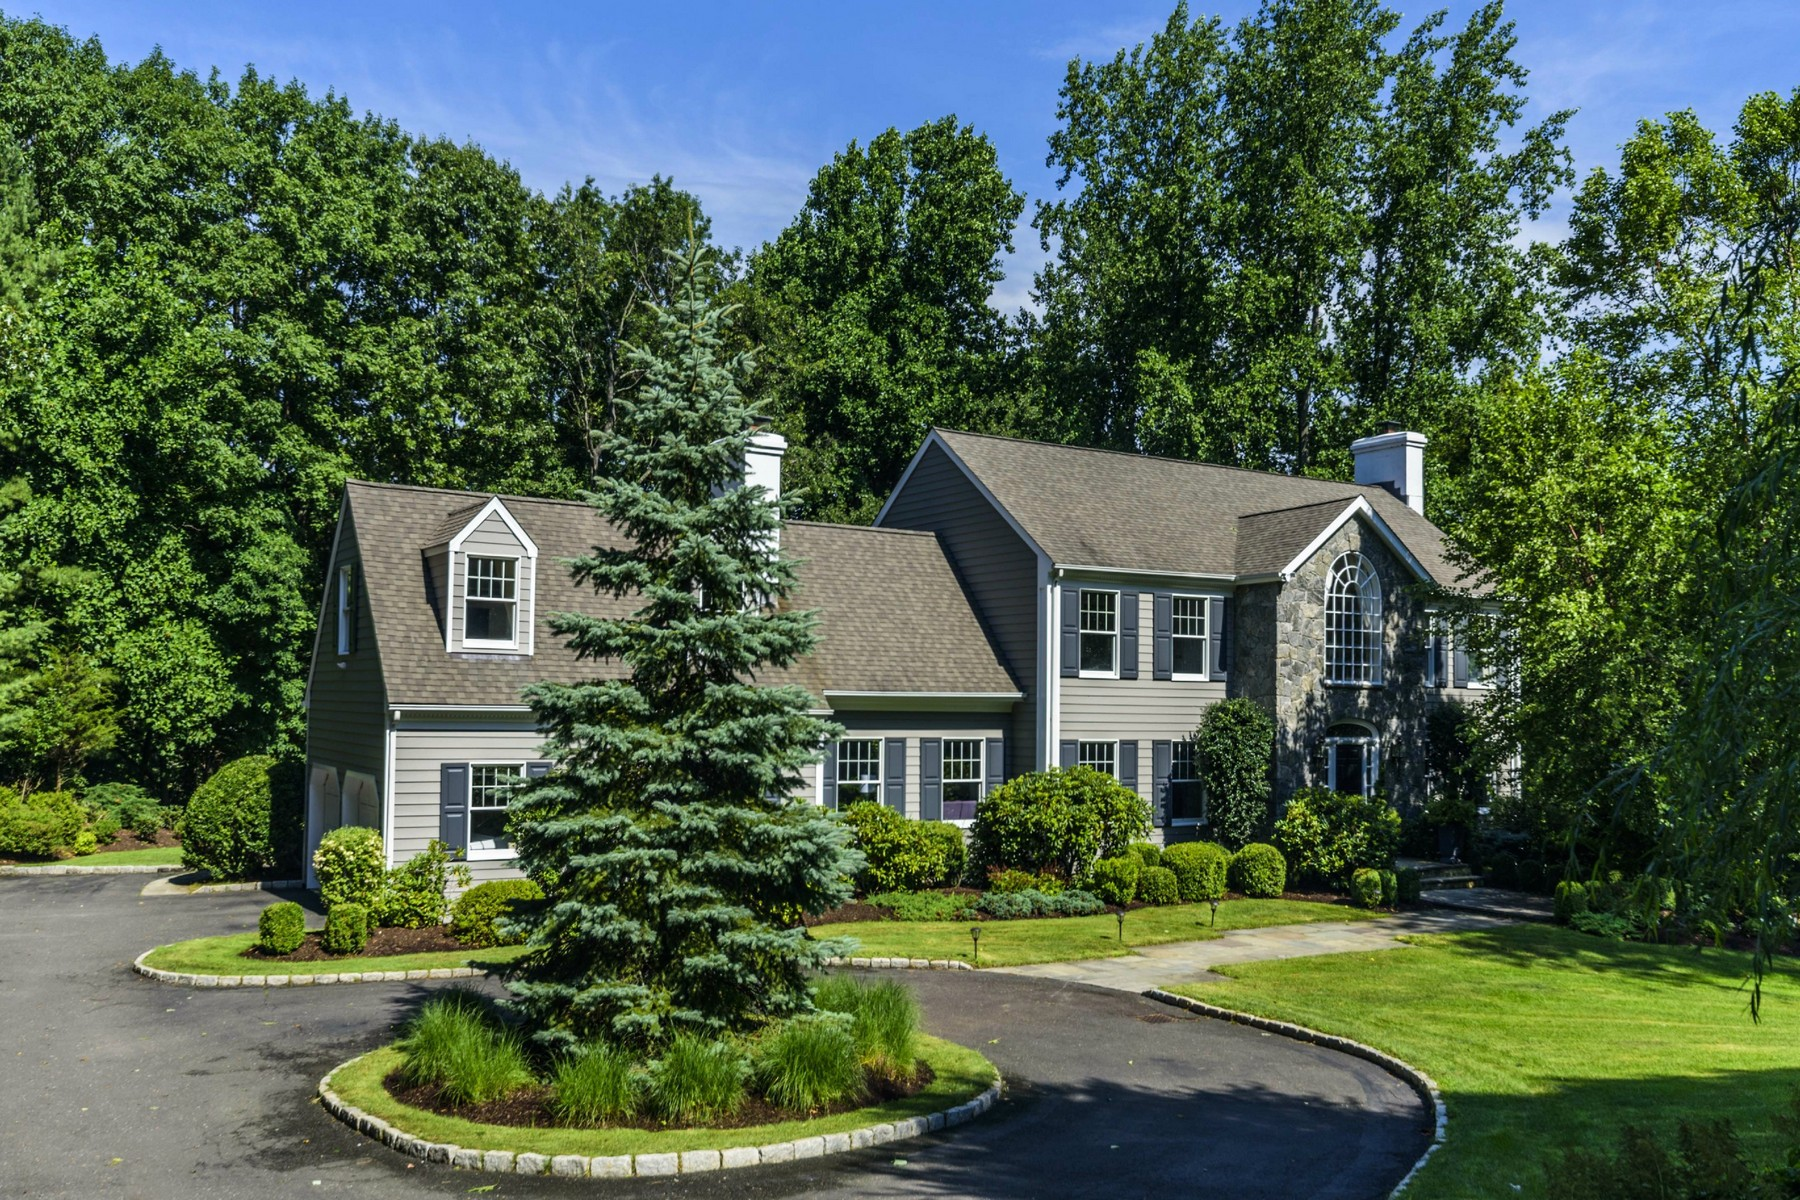 Casa Unifamiliar por un Venta en Private, Gated Waterfront Community 7 Hilltop Road Norwalk, Connecticut, 06854 Estados Unidos